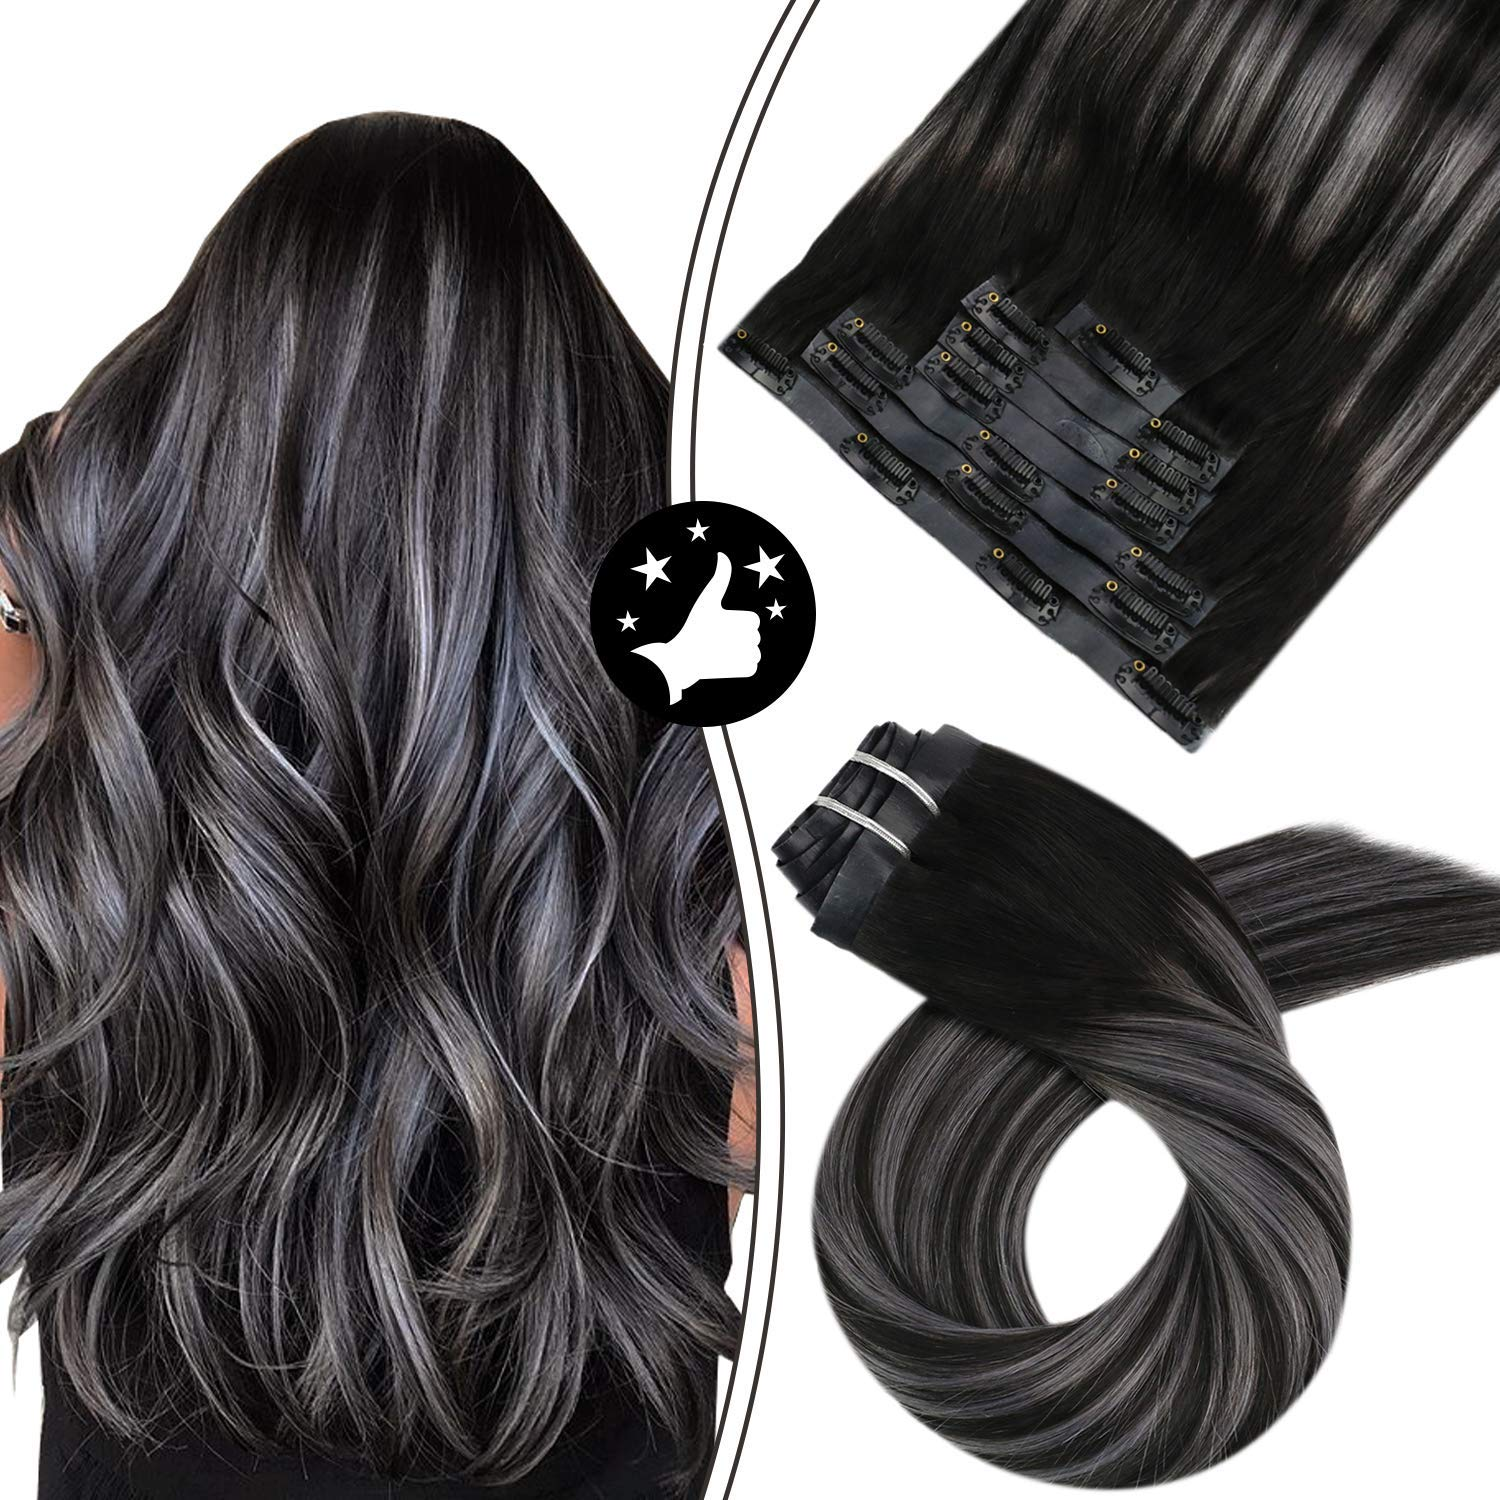 PU Clip in Hair Extensions 100% Real Human Hair Balayage Off Black to Silver Silky Straight 7PCS 100G Seamless Clip in Hair